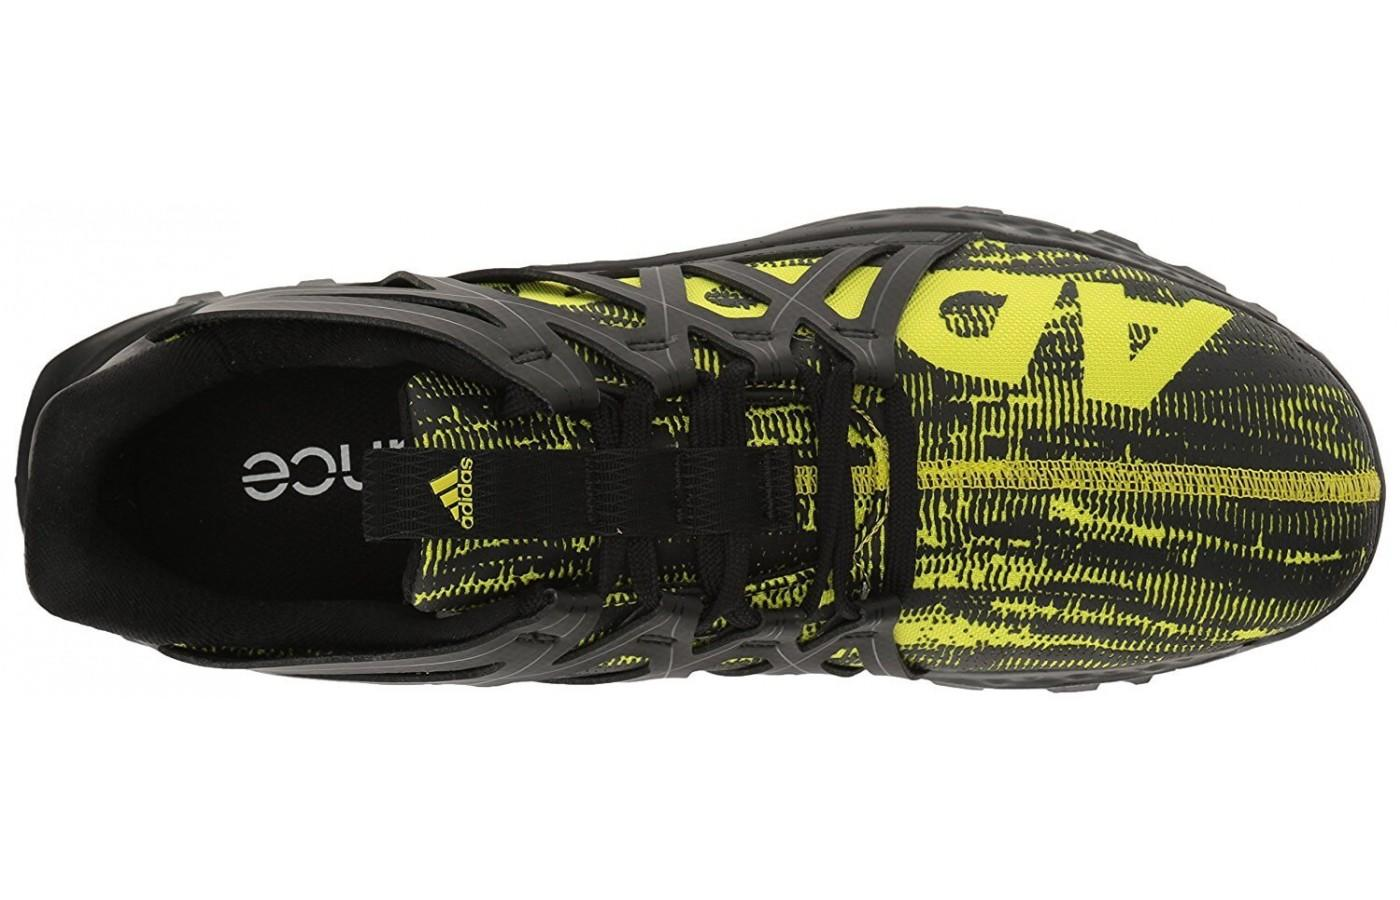 The Adidas Vigor Bounce Reviewed and tested; Snug and Secure upper unit ...